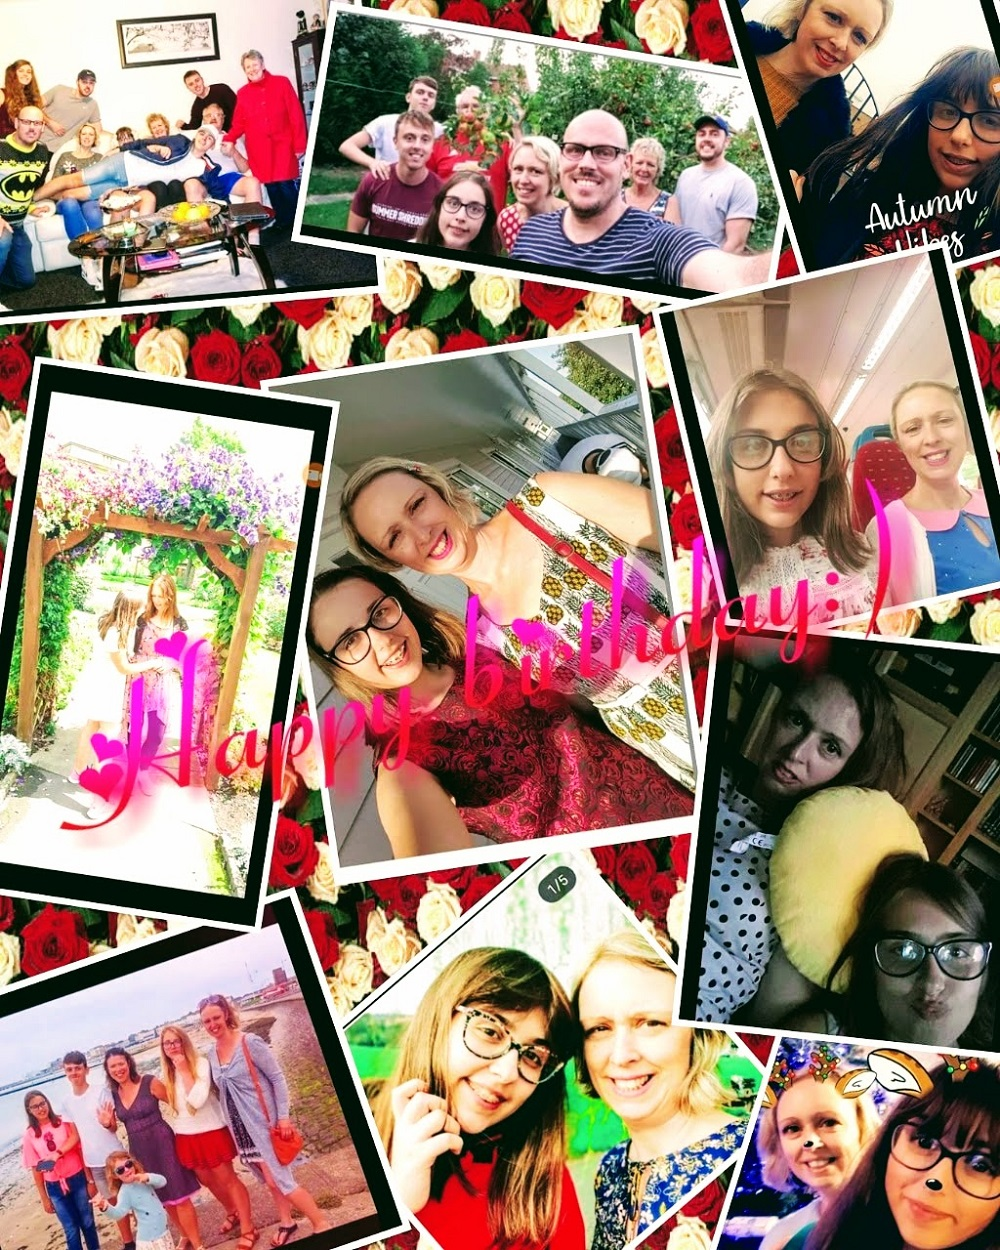 9 Pictures From My Phone Camera Roll #LinkUp